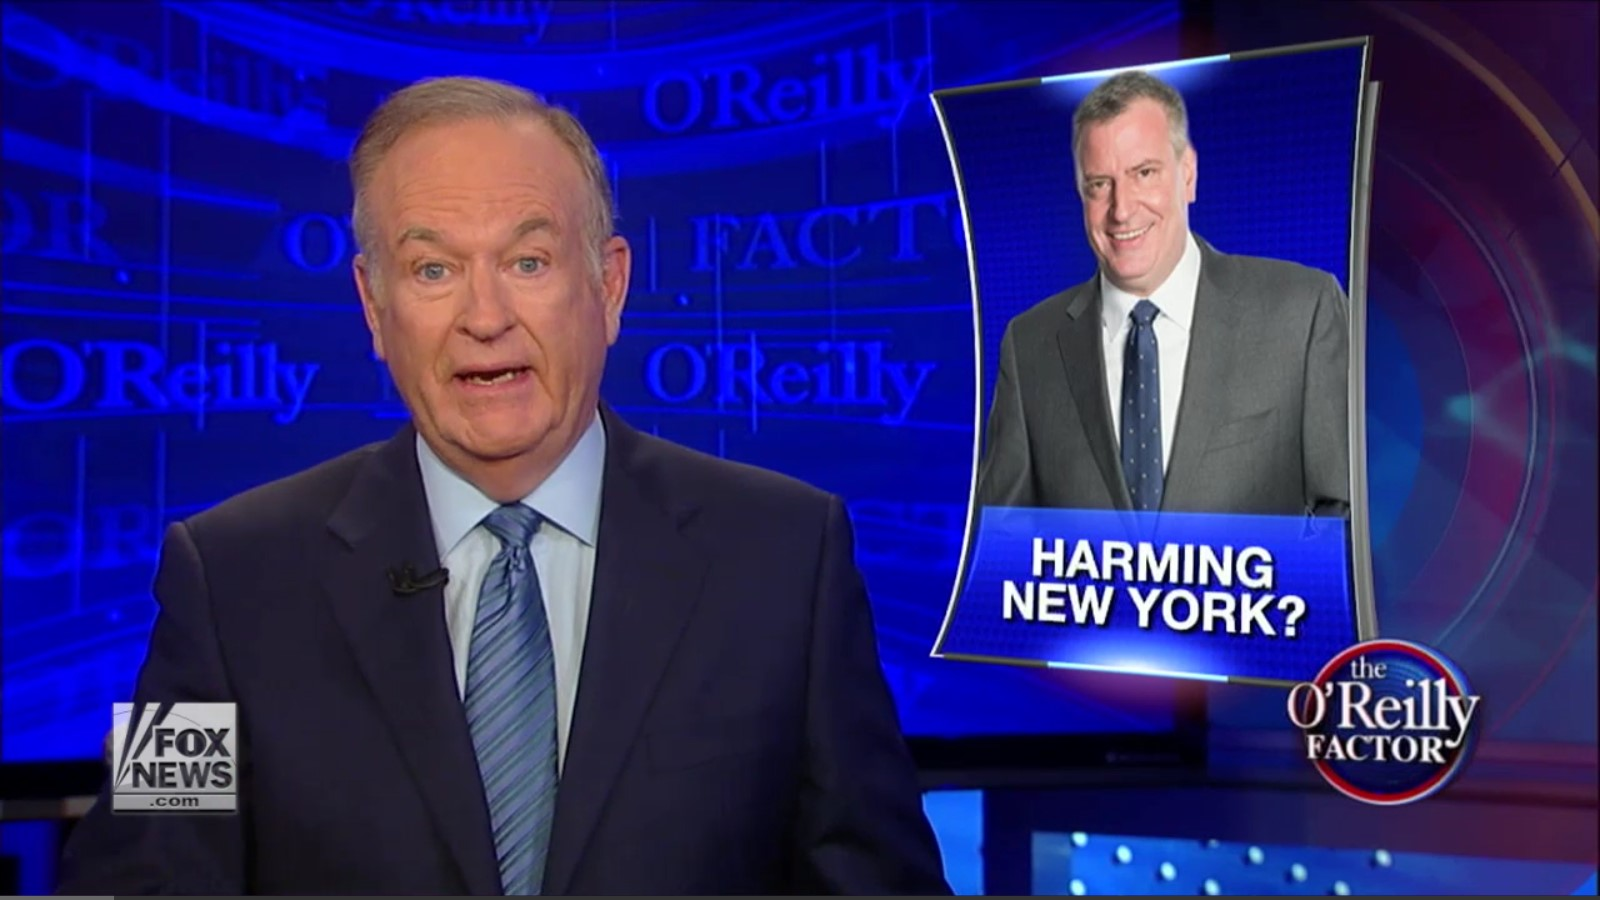 Want Another Reason To Hate Bill O'Reilly? Watch Him Completely Crap On Black Homeless People